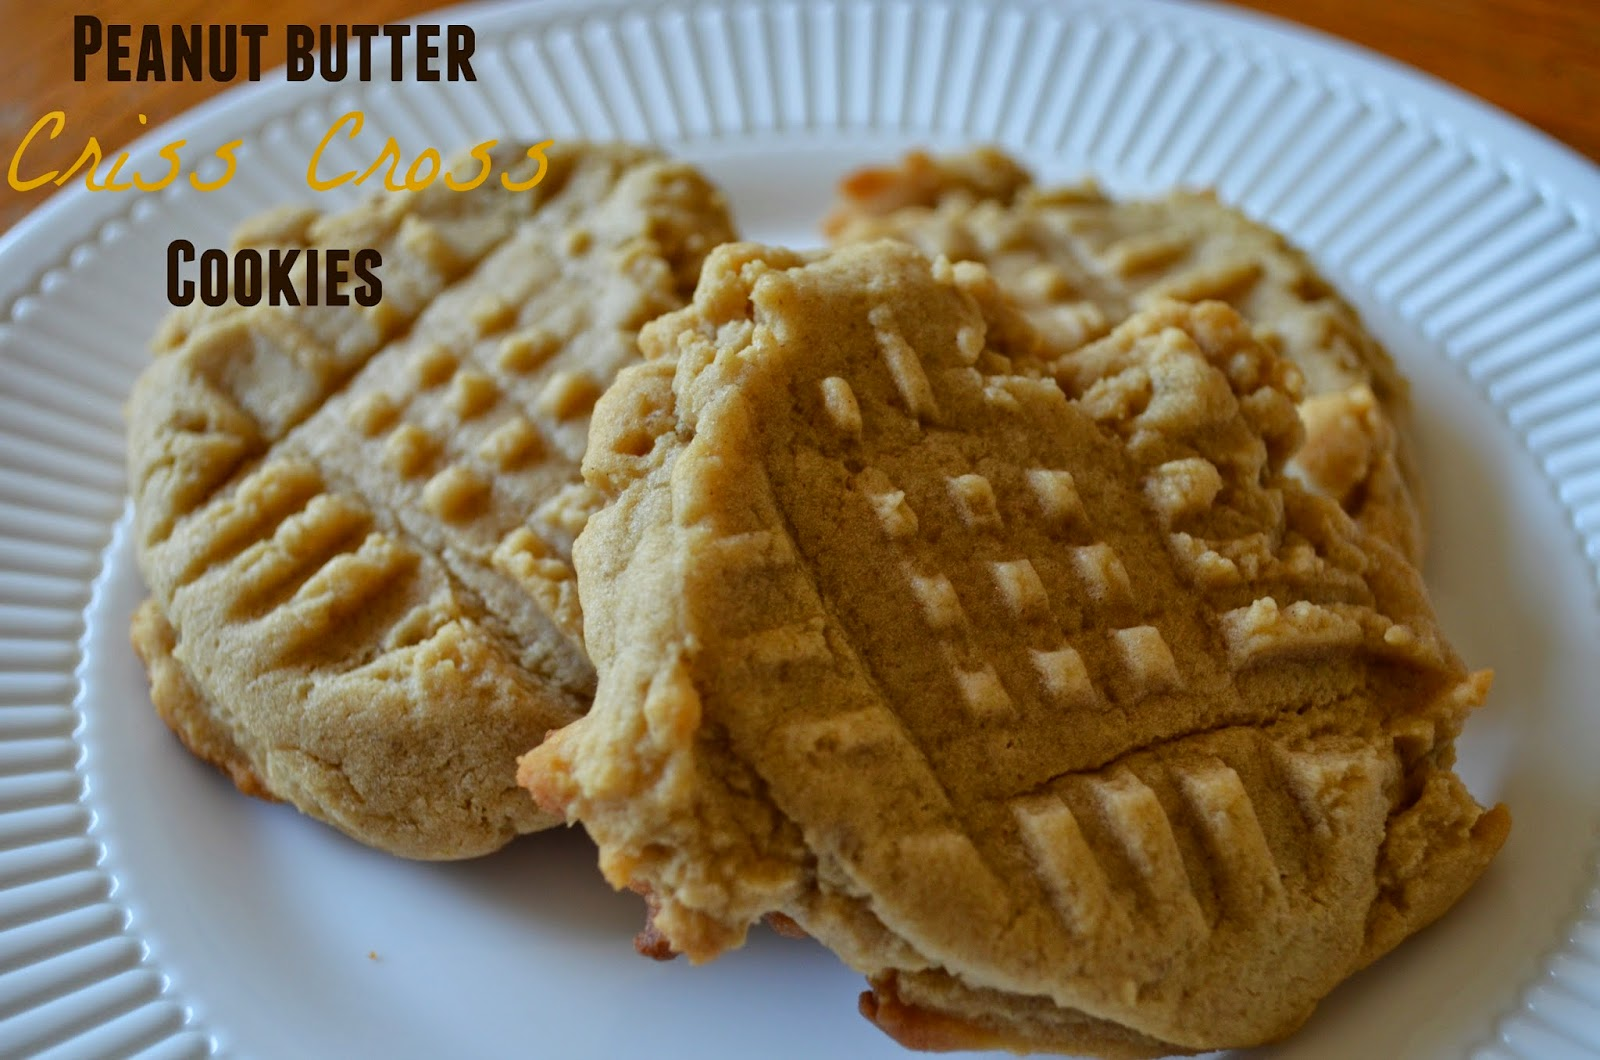 Peanut Butter Criss Cross Cookies- my grandma's recipe! #HolidayAdvantEdge #ad #recipe #cookies